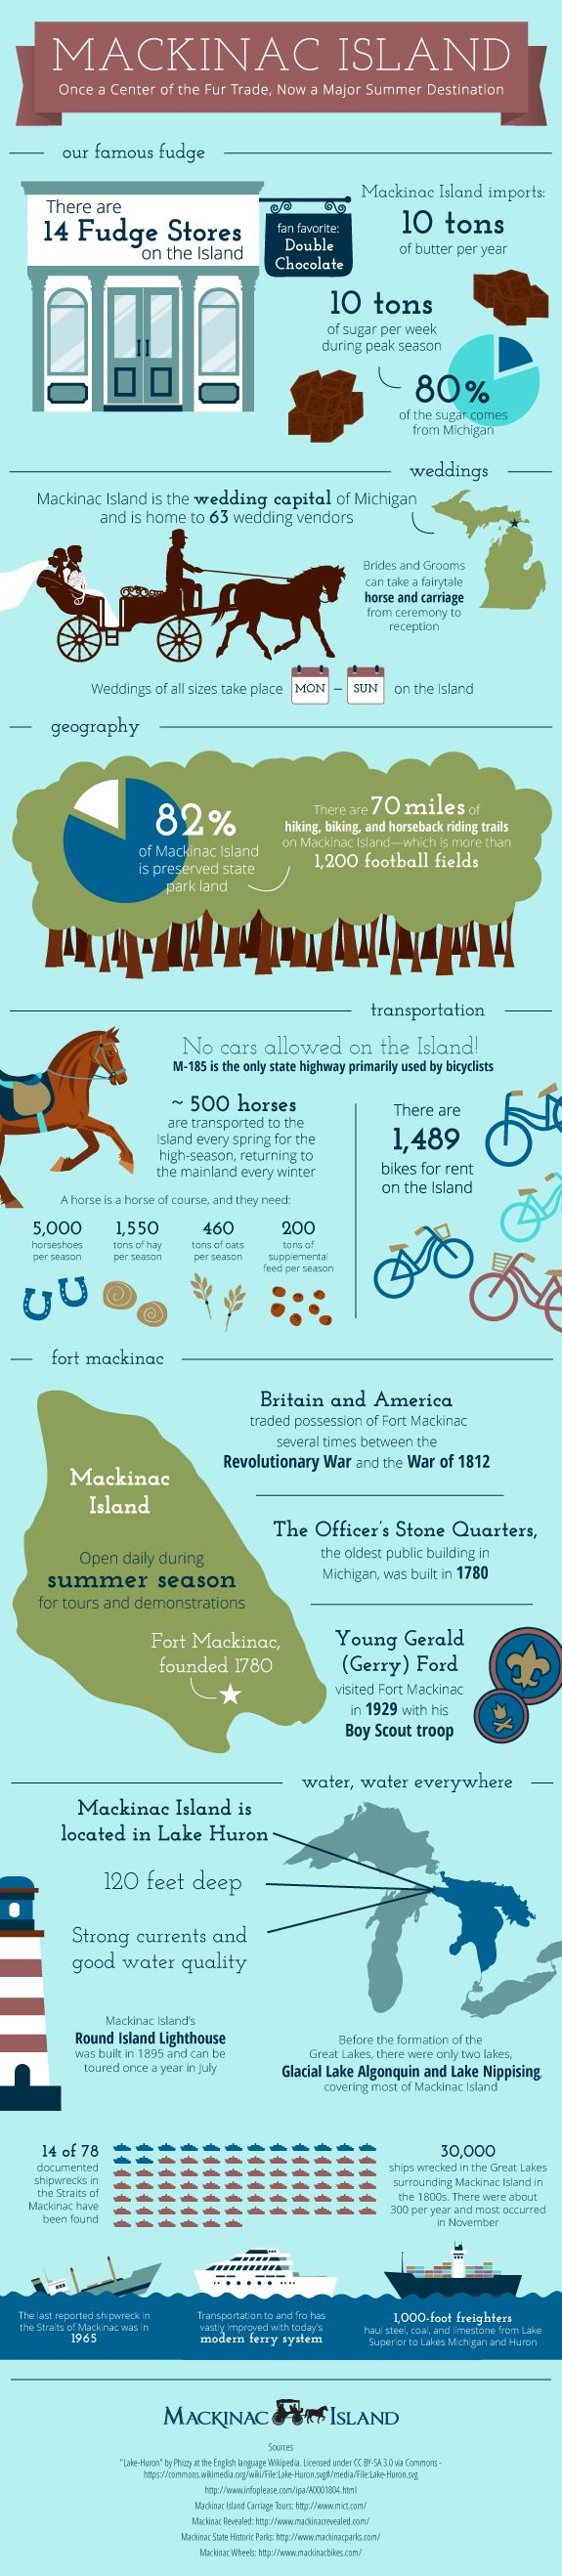 Mackinac Island: Michigan's Top Summer Retreat http://www.mackinacisland.org/mackinac-island-facts/